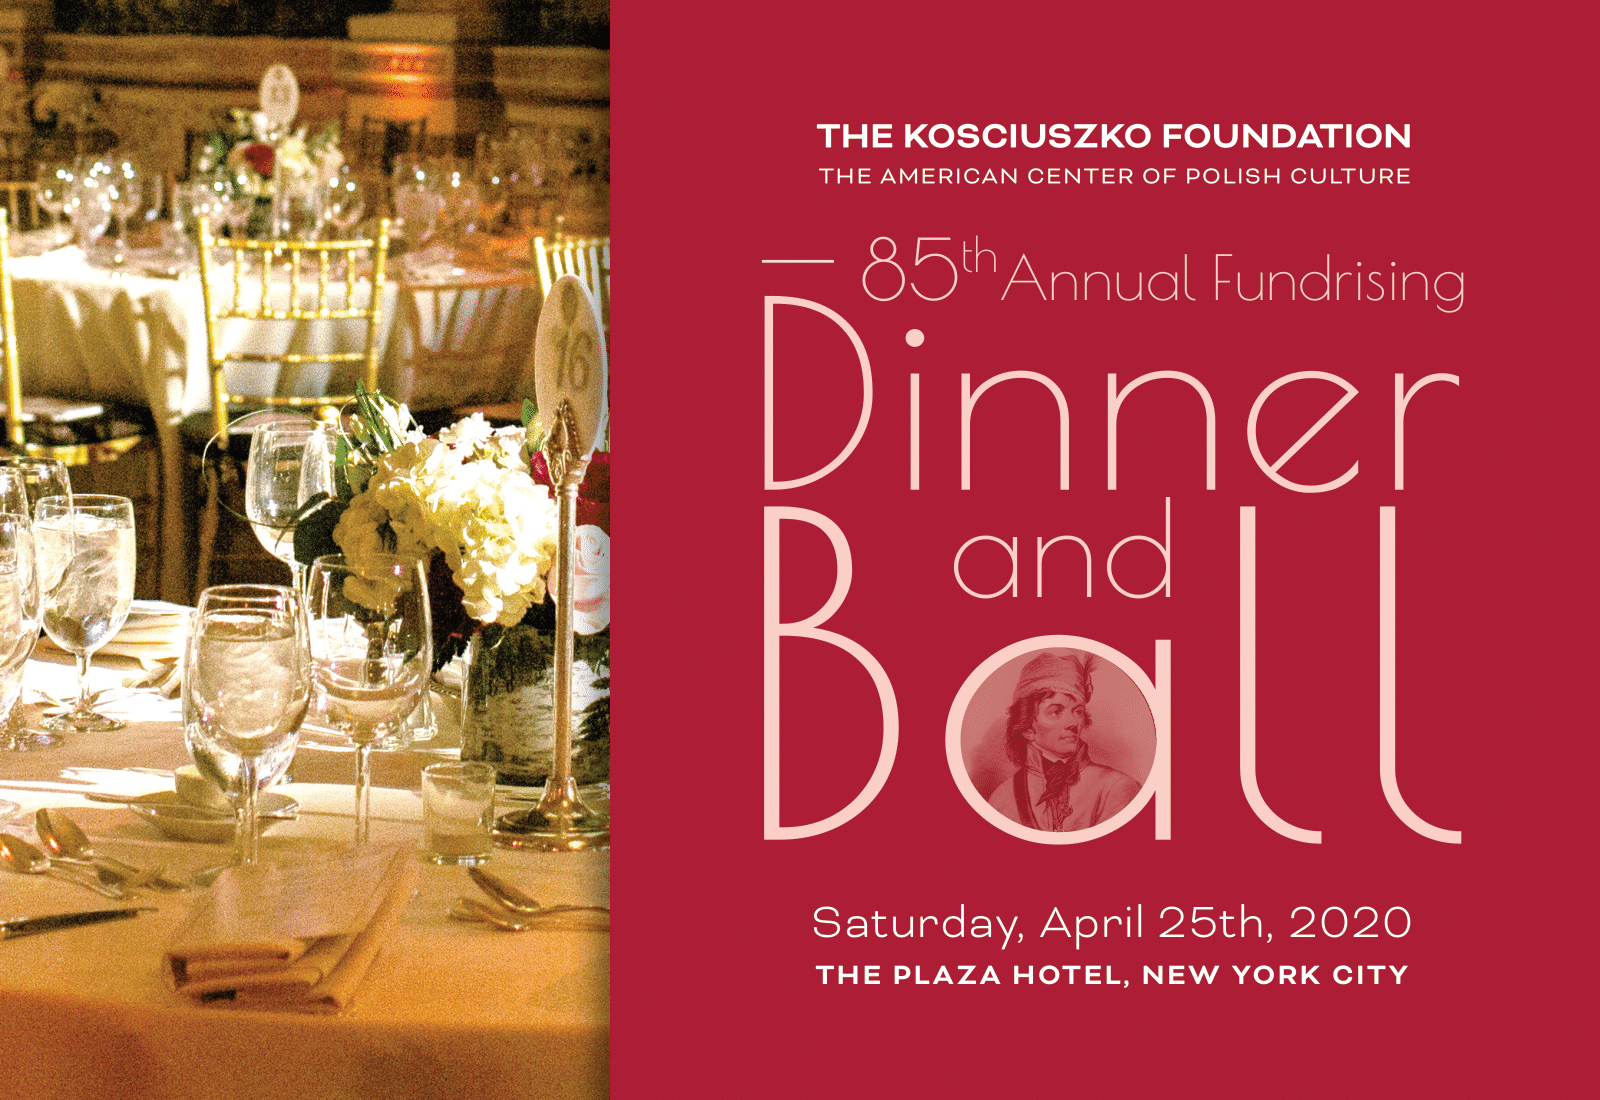 The KF 85th Annual Fundraising Dinner and Ball in New York City